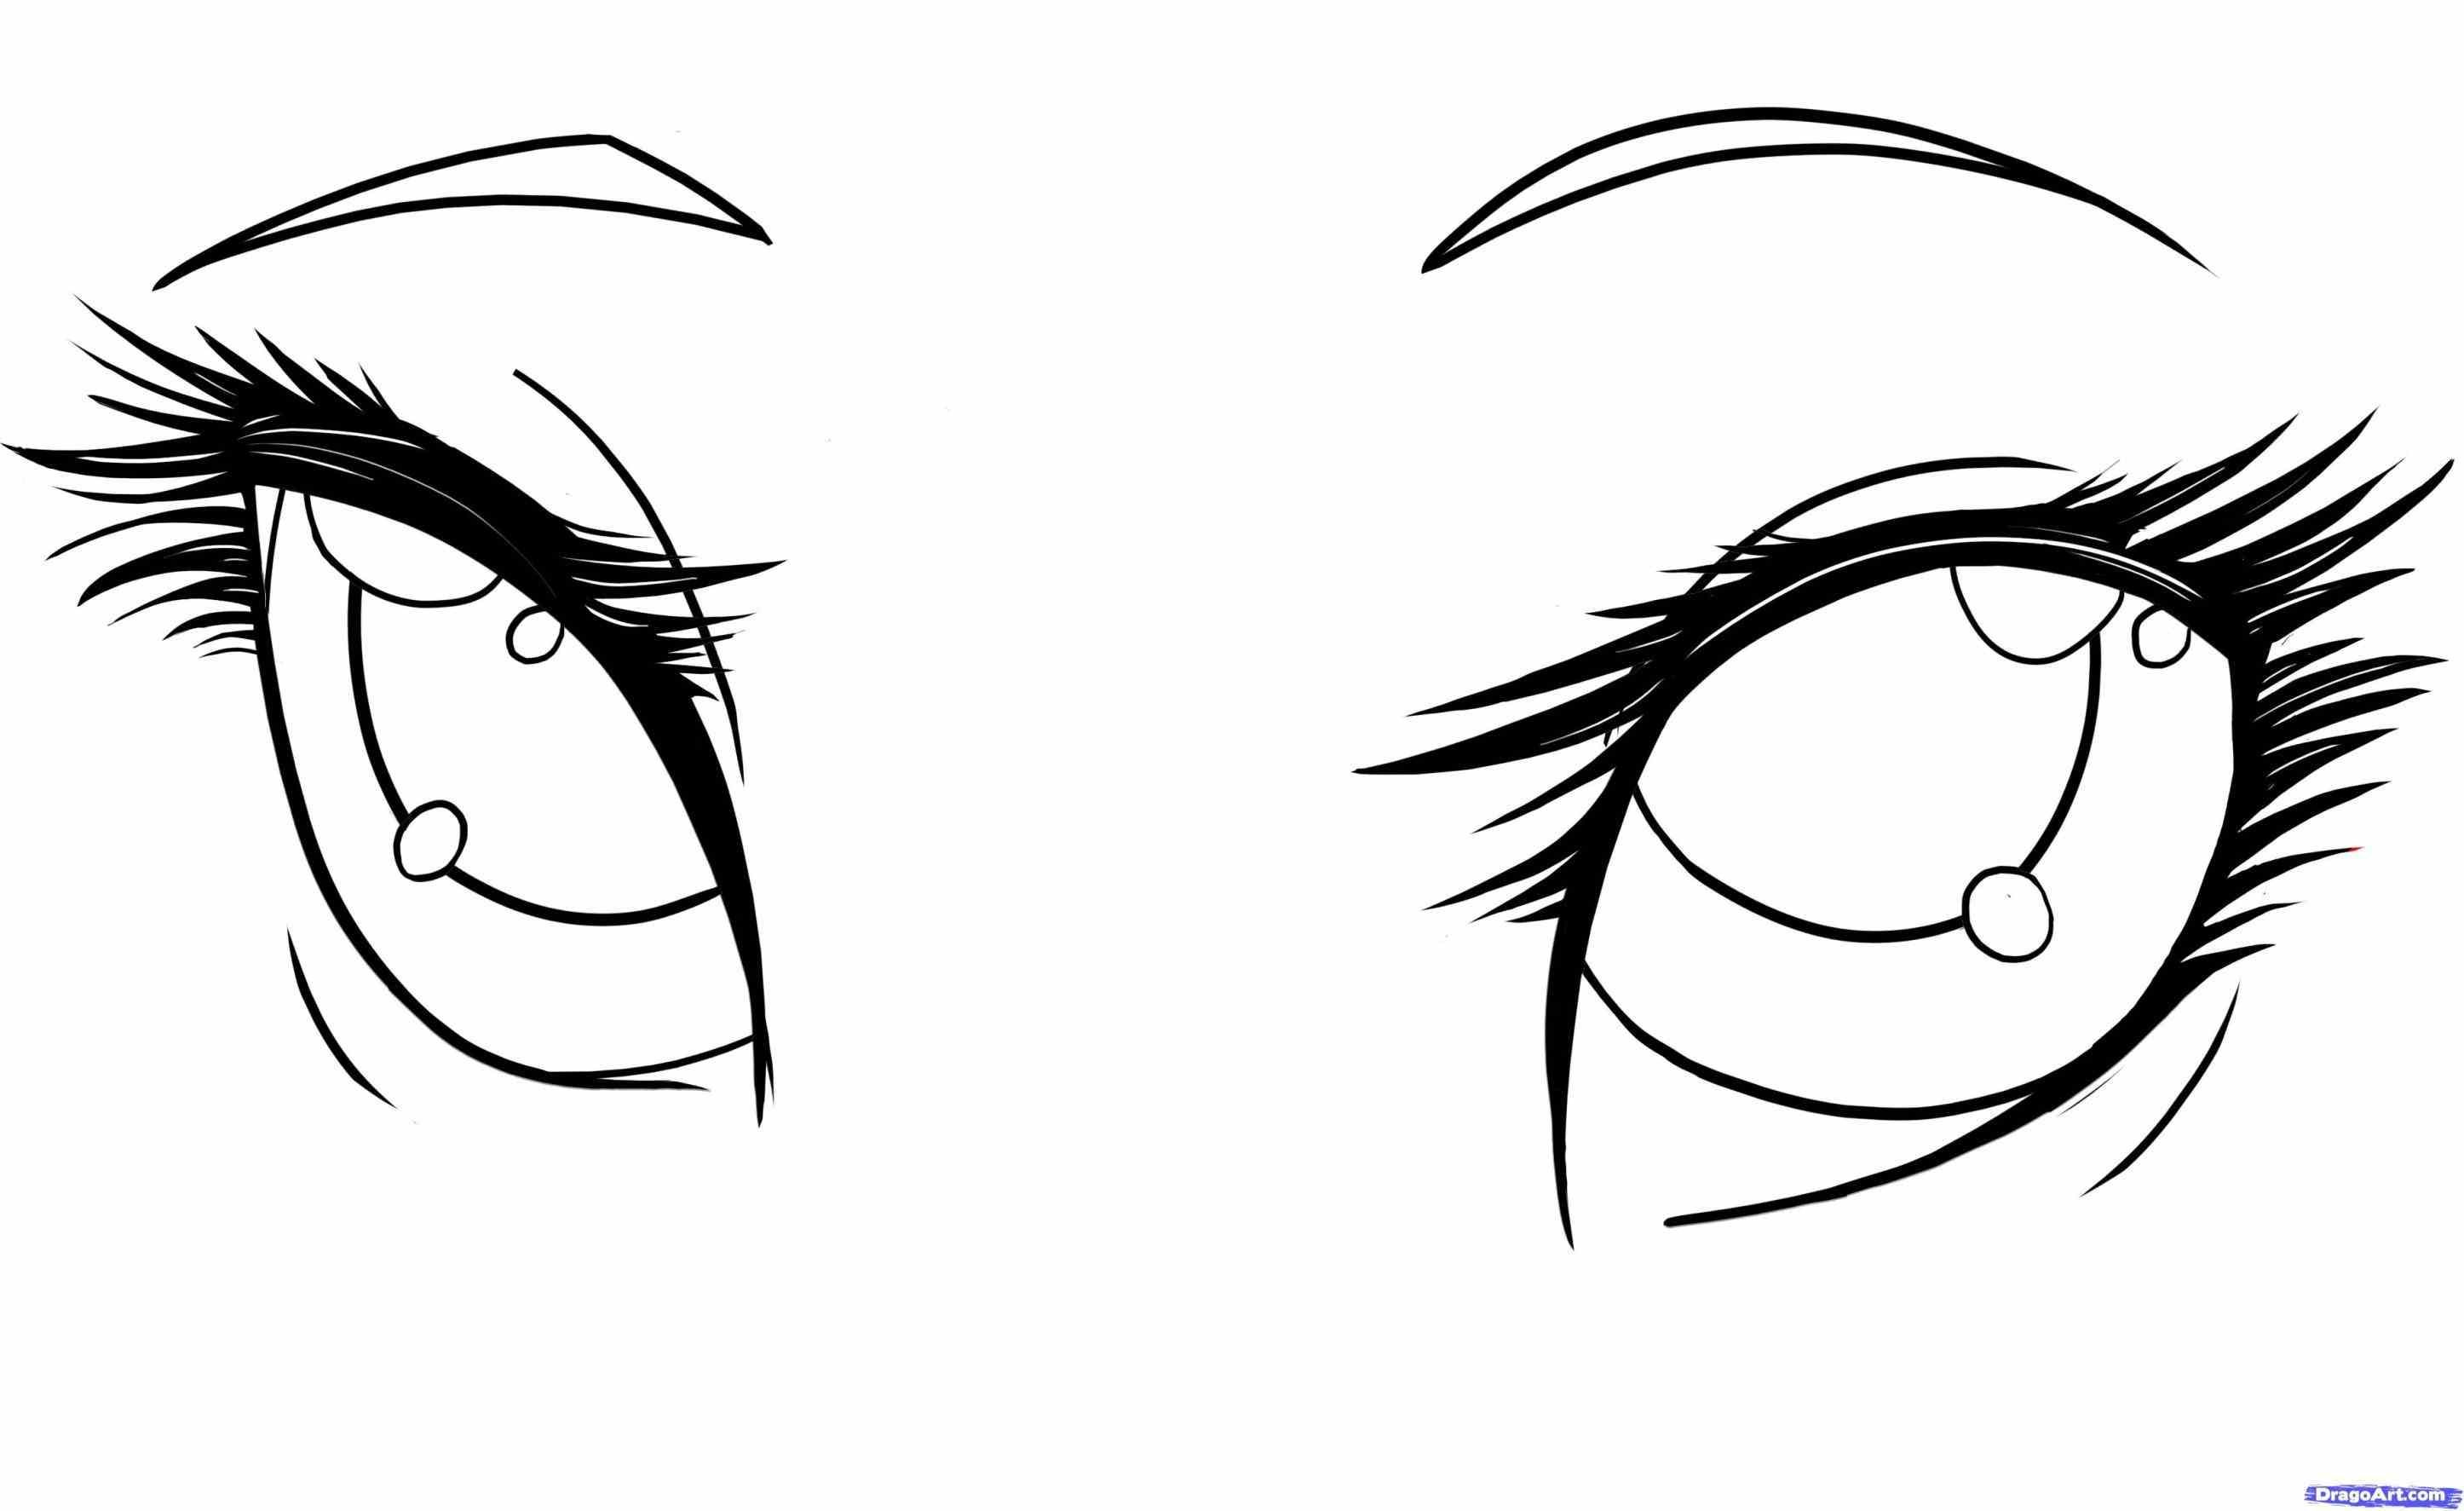 Line Drawing Of Sad Face : Pin by draw info on drawing your ideas sad sketches